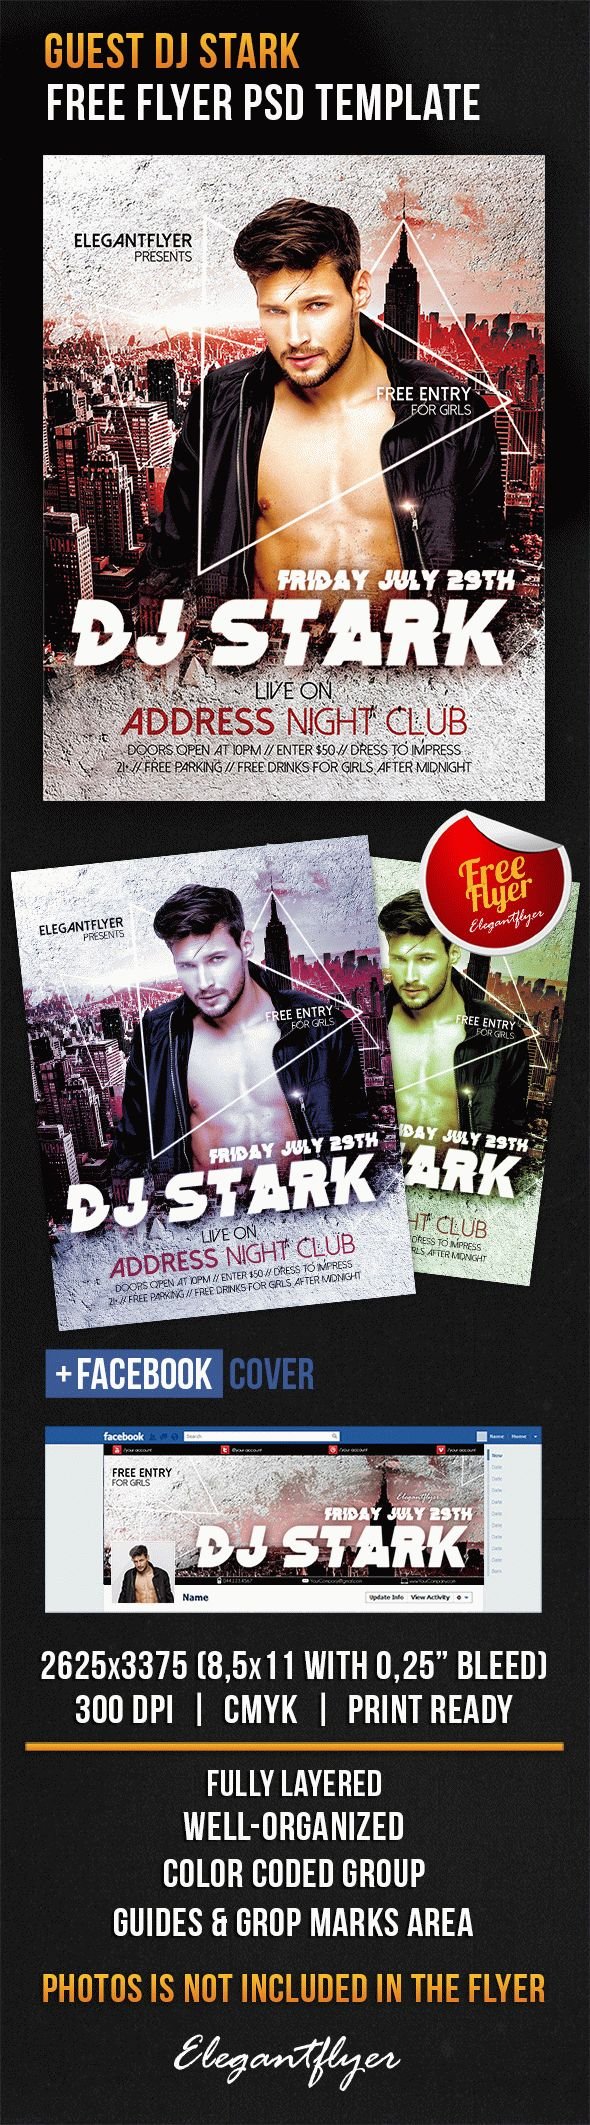 Guest Dj Stark – Free Flyer PSD Template + Facebook Cover